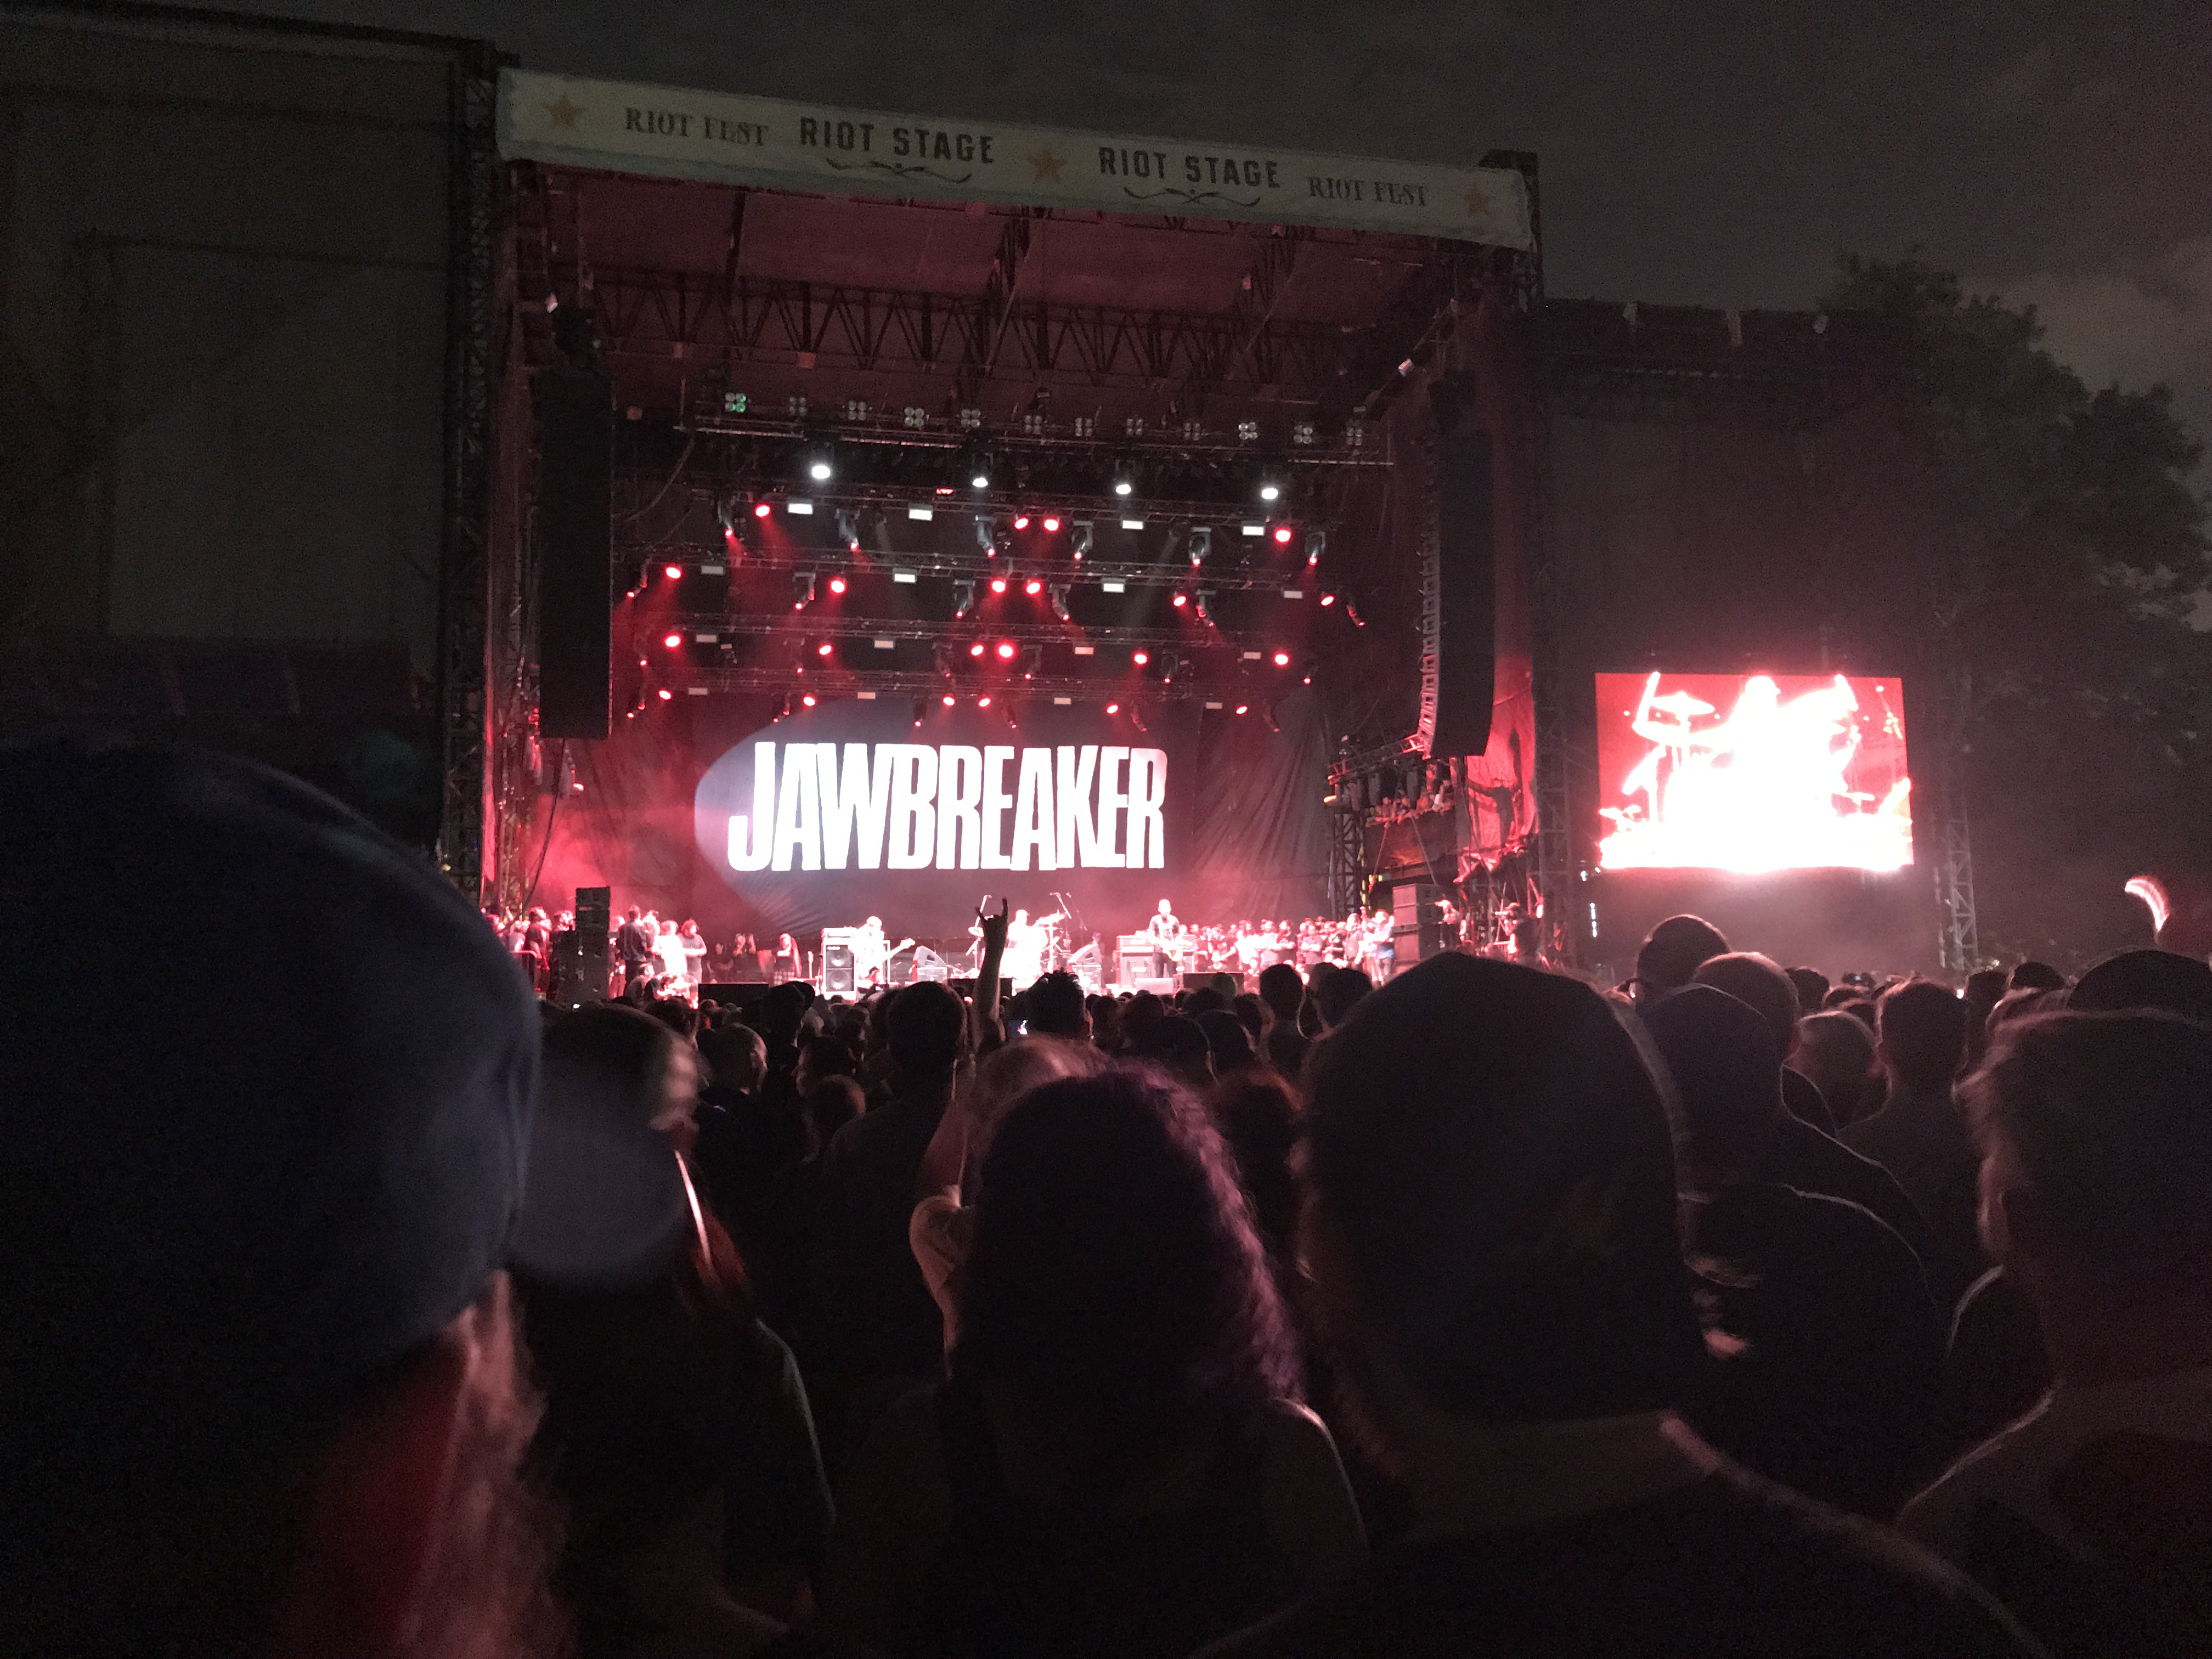 Jawbreaker playing at Riot Fest